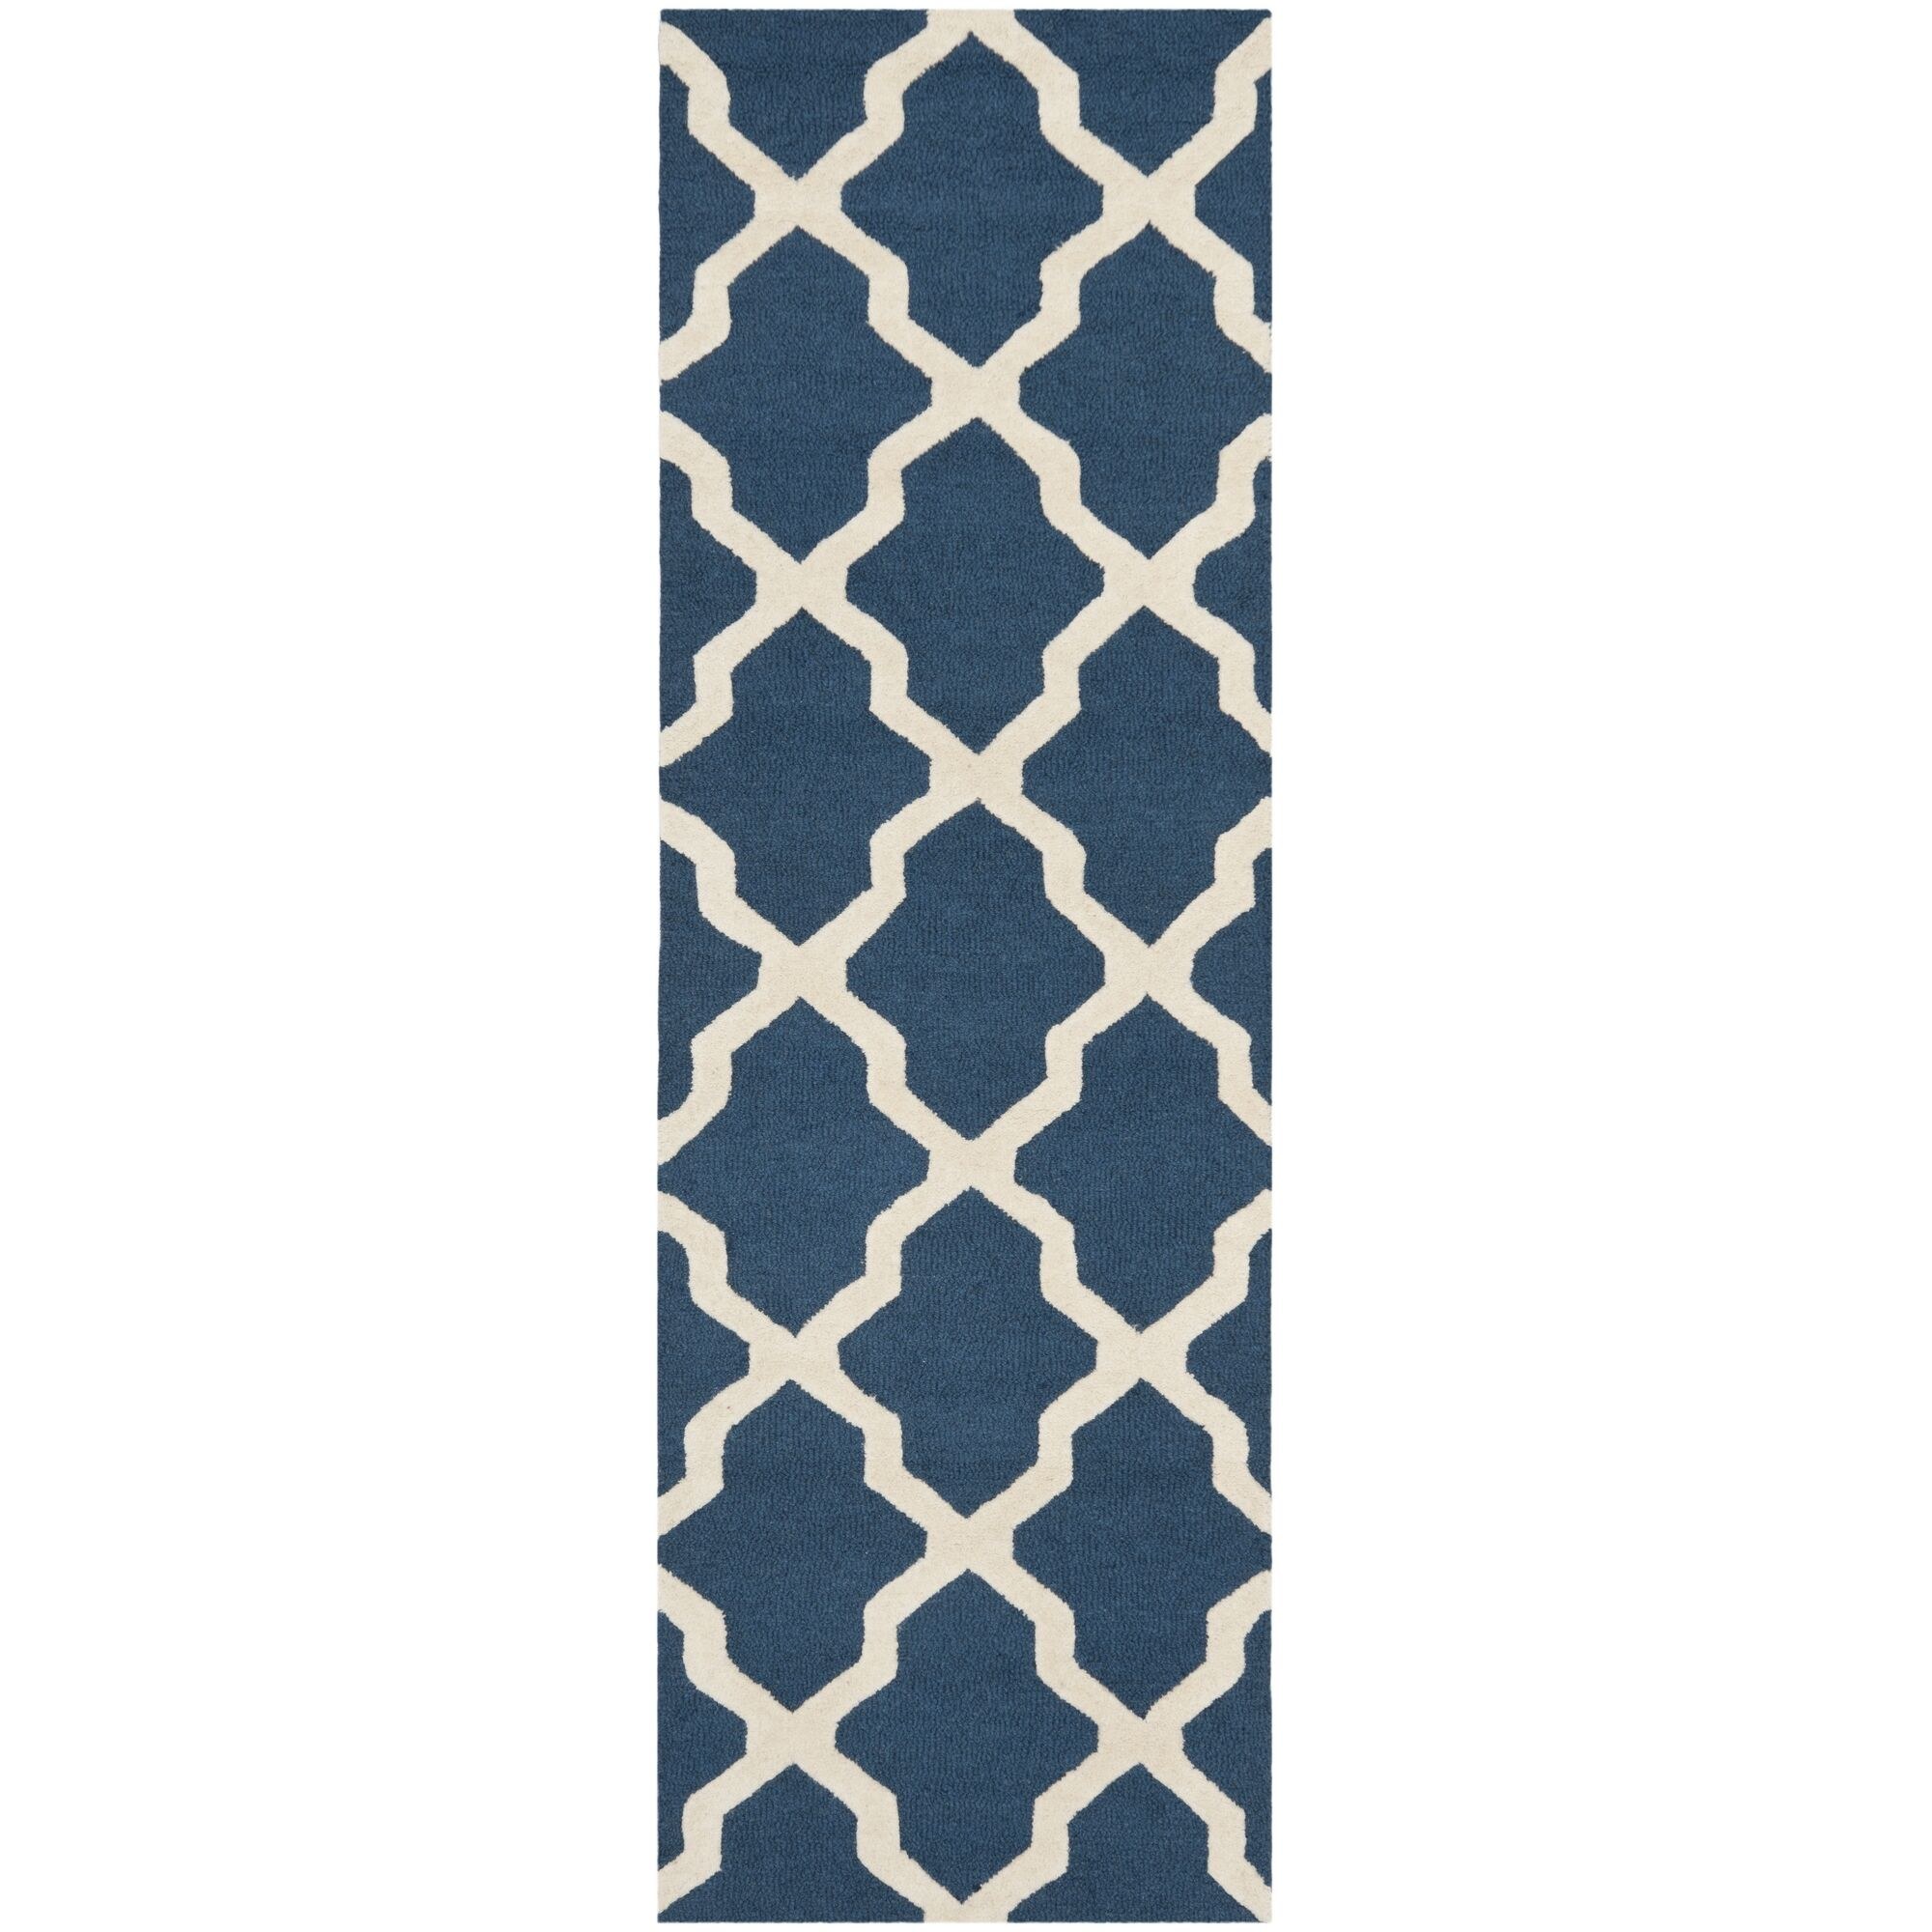 Charlenne Lattice Handand-Tufted Wool Navy Blue Area Rug Rug Size: Runner 2'6